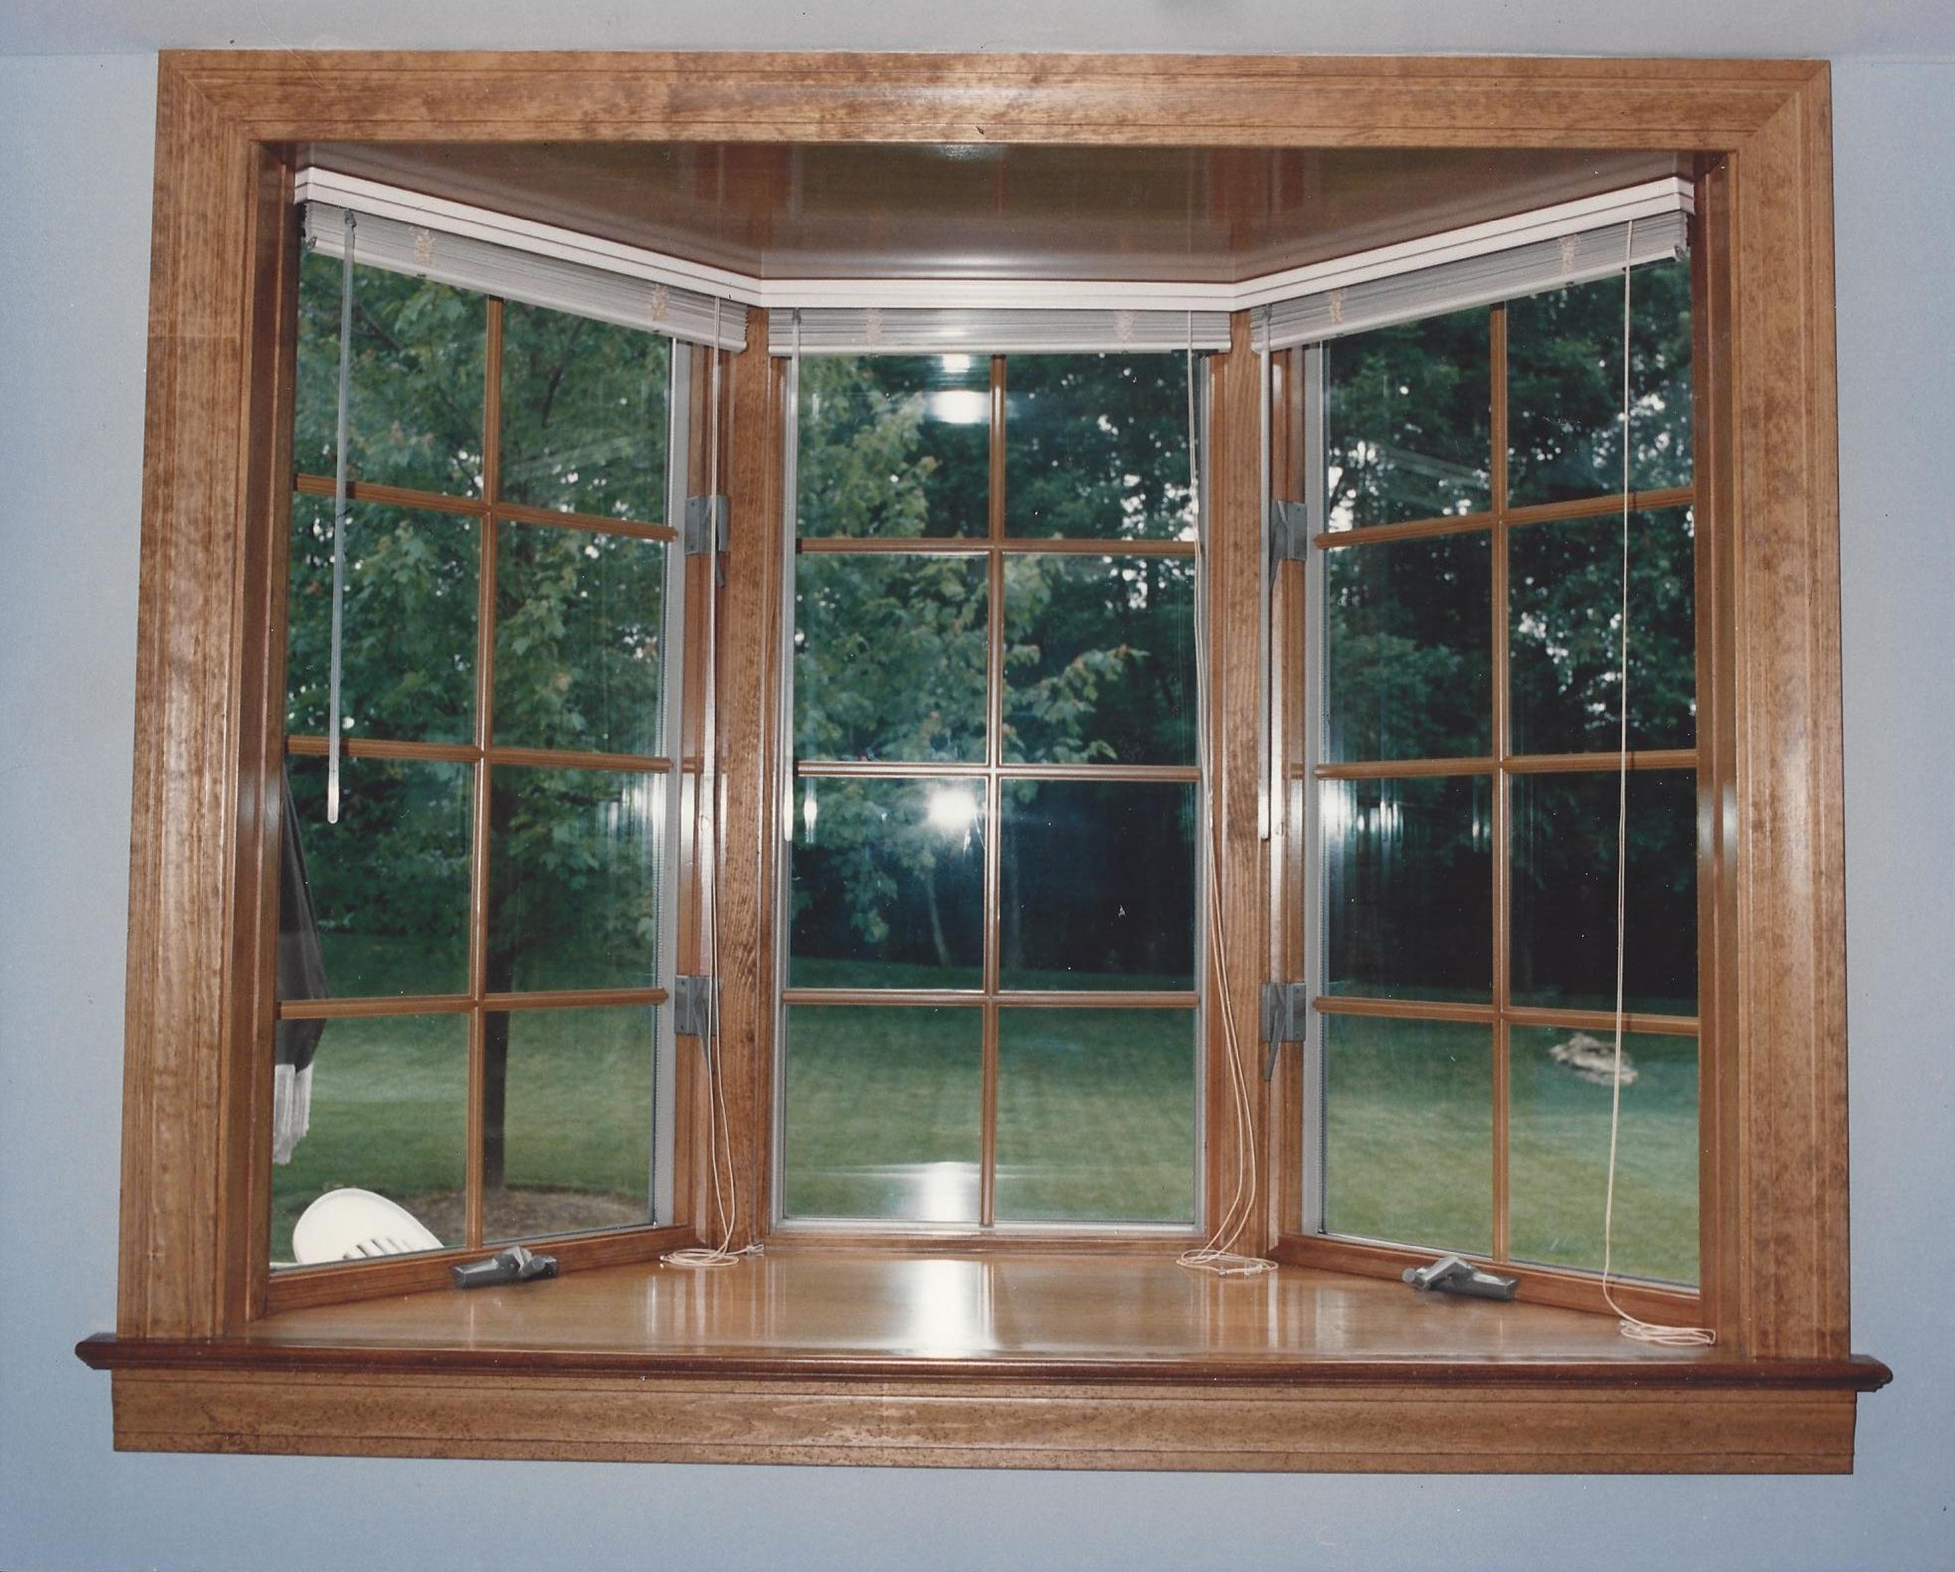 Finally, Here Is A Picture Of A Bay Window That Is Different From The  Previous Bay Windows Discussed. This Bay Was Built Without A Roof, Which  Saved The ...